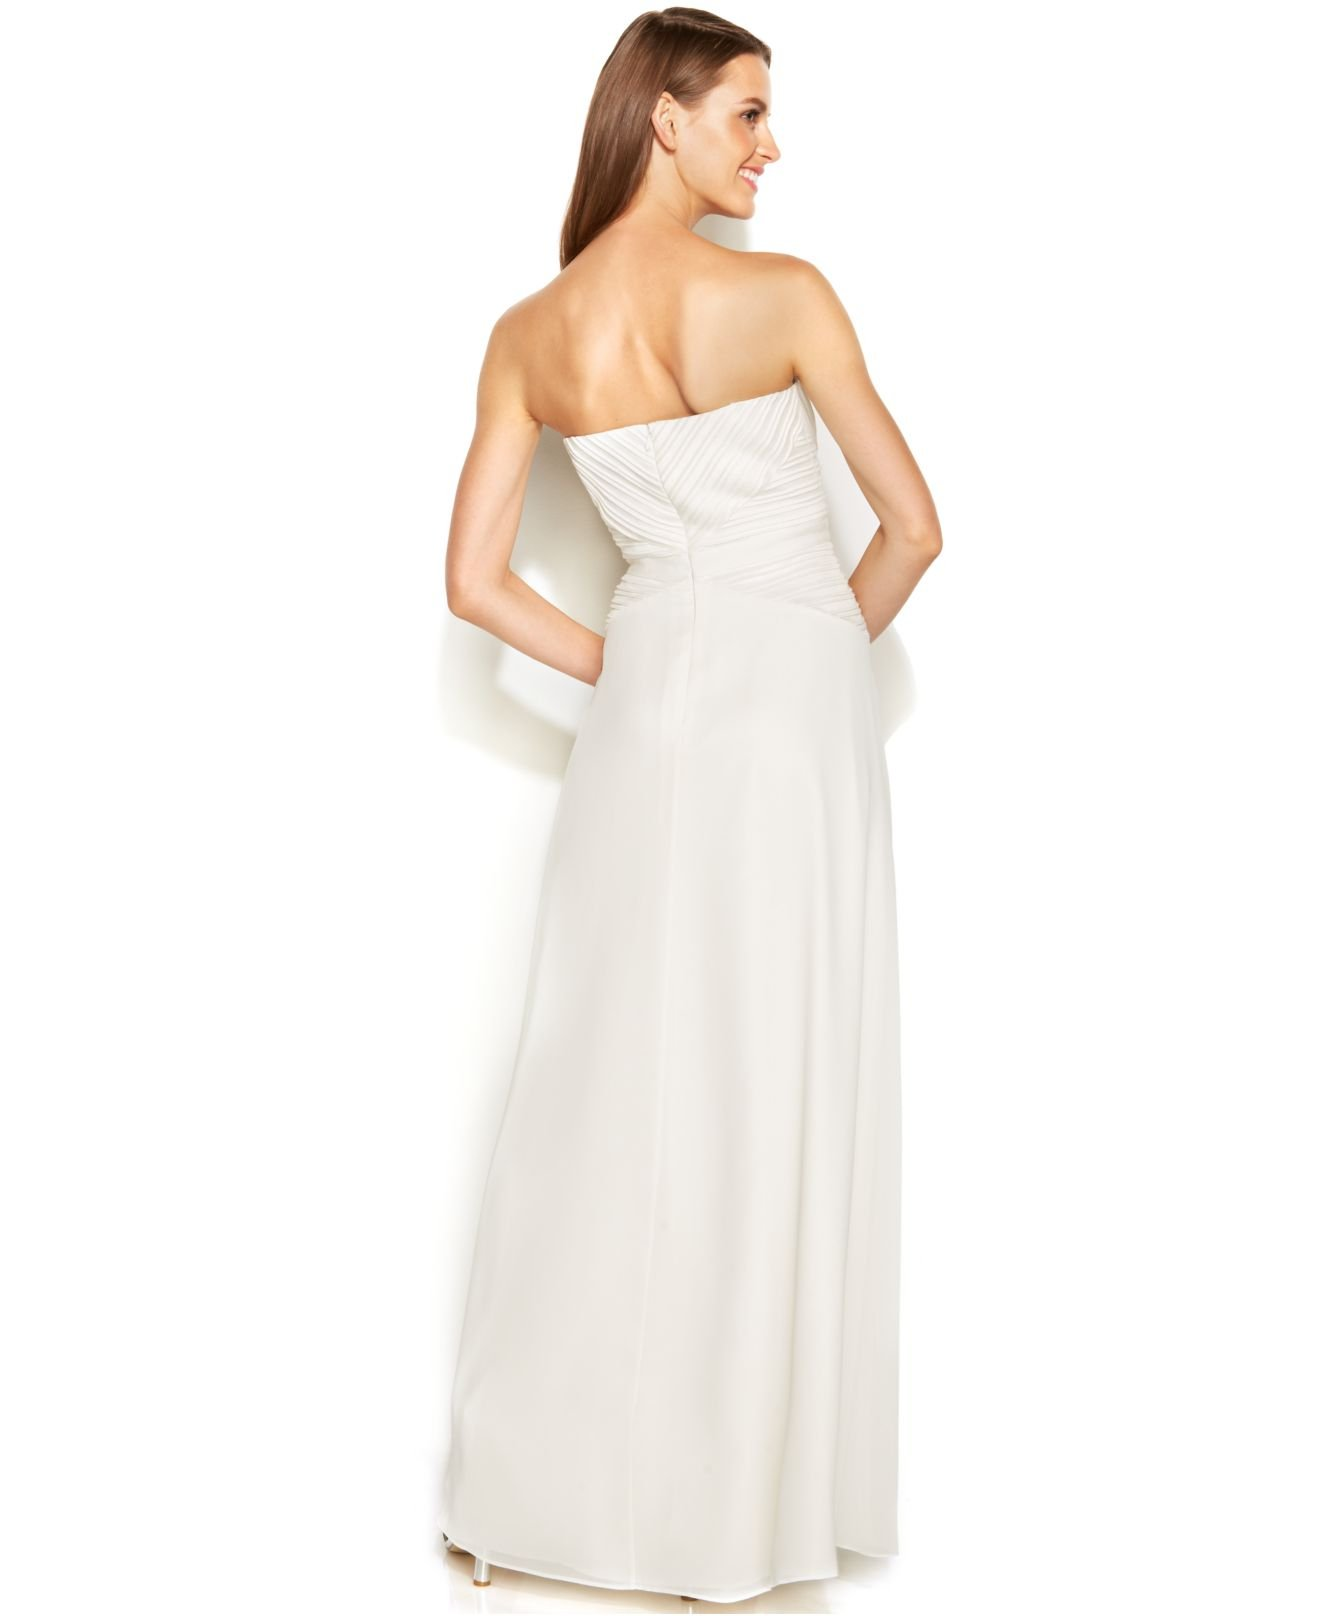 Lyst - Calvin Klein Strapless Pleated Bridal Gown in White